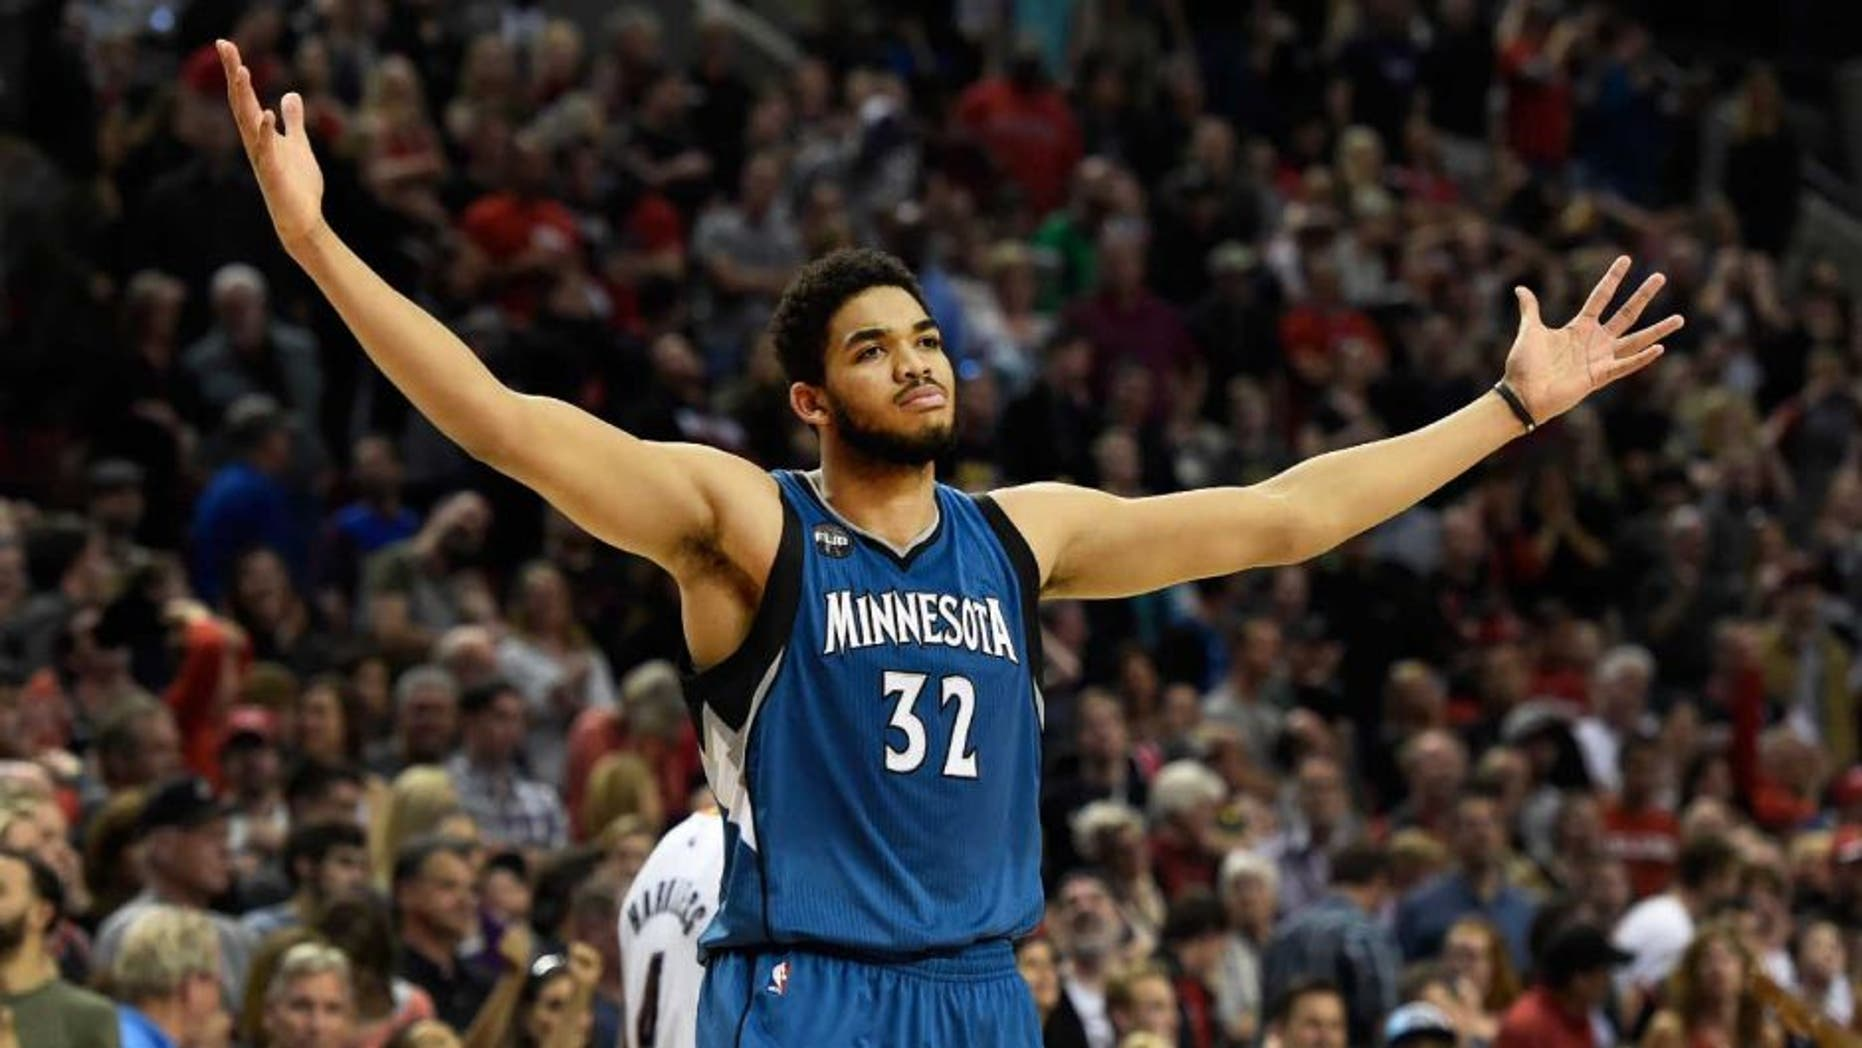 Saturday, April 9: Minnesota Timberwolves center Karl-Anthony Towns celebrates after hitting the game-winning shot against the Portland Trail Blazers.